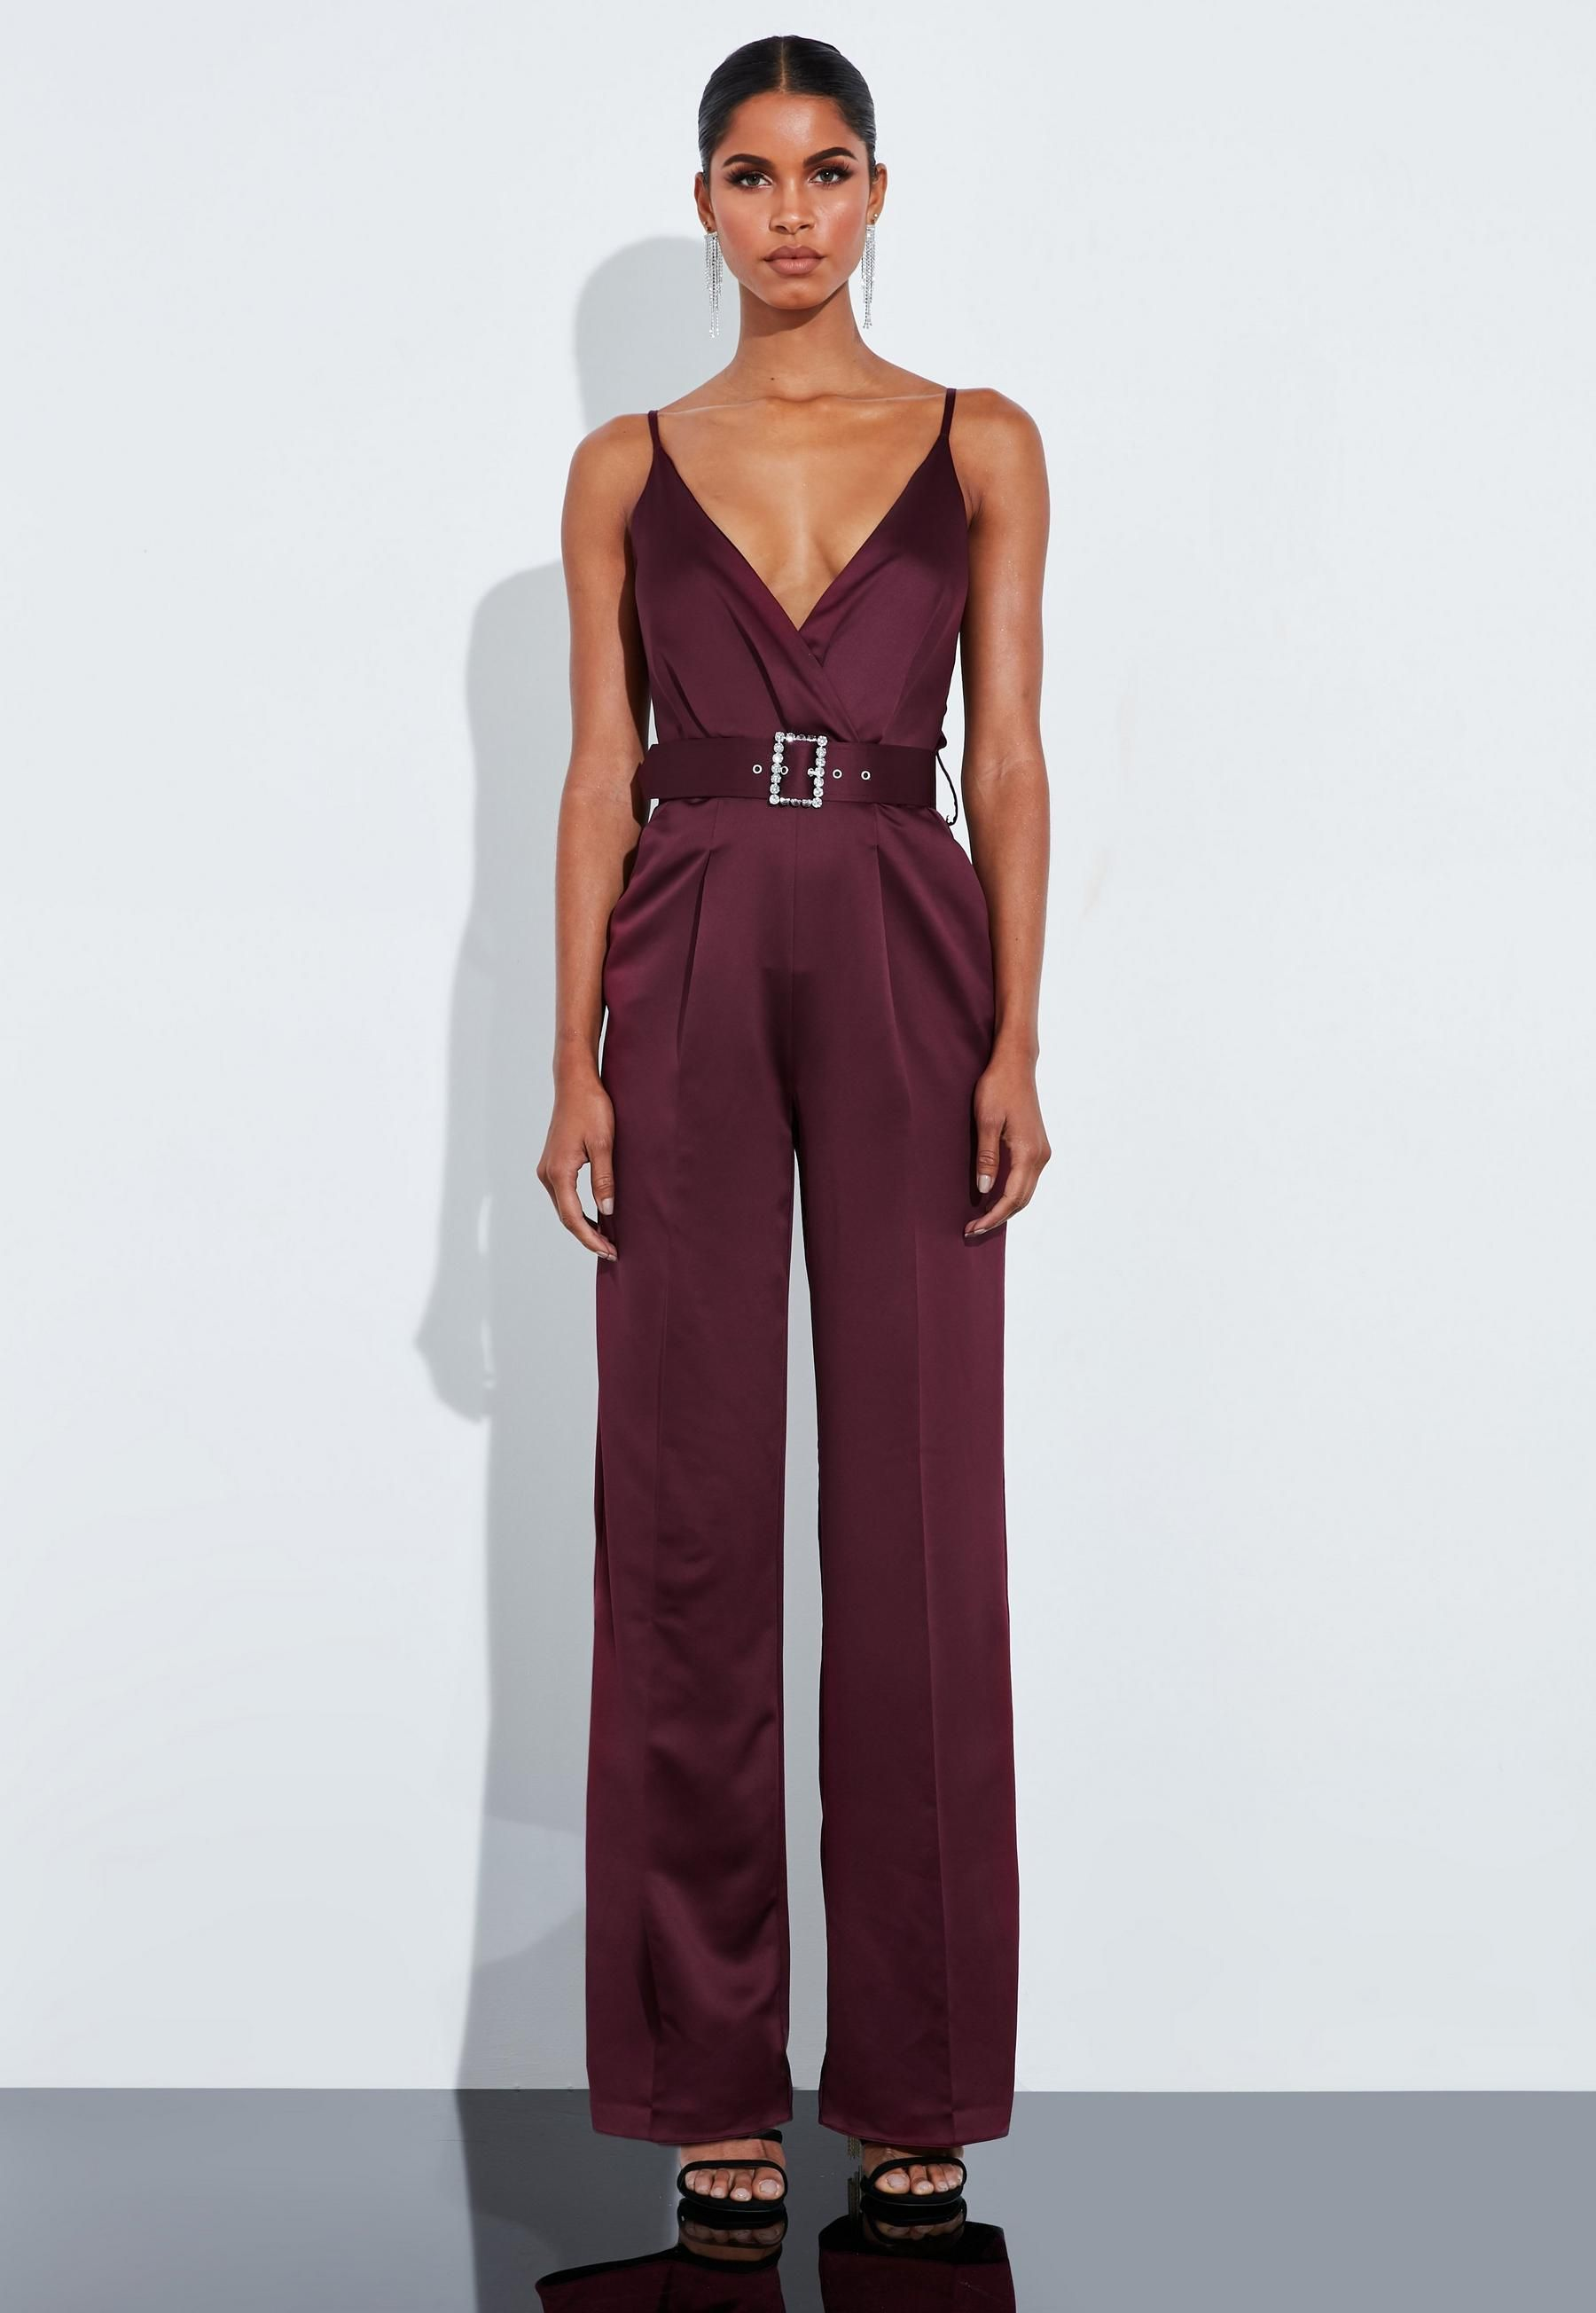 Burgundy Satin Plunge Belted Jumpsuit House of Ollichon lovesPeace  Love Burgundy Satin Plunge Belted Jumpsuit  Missguided